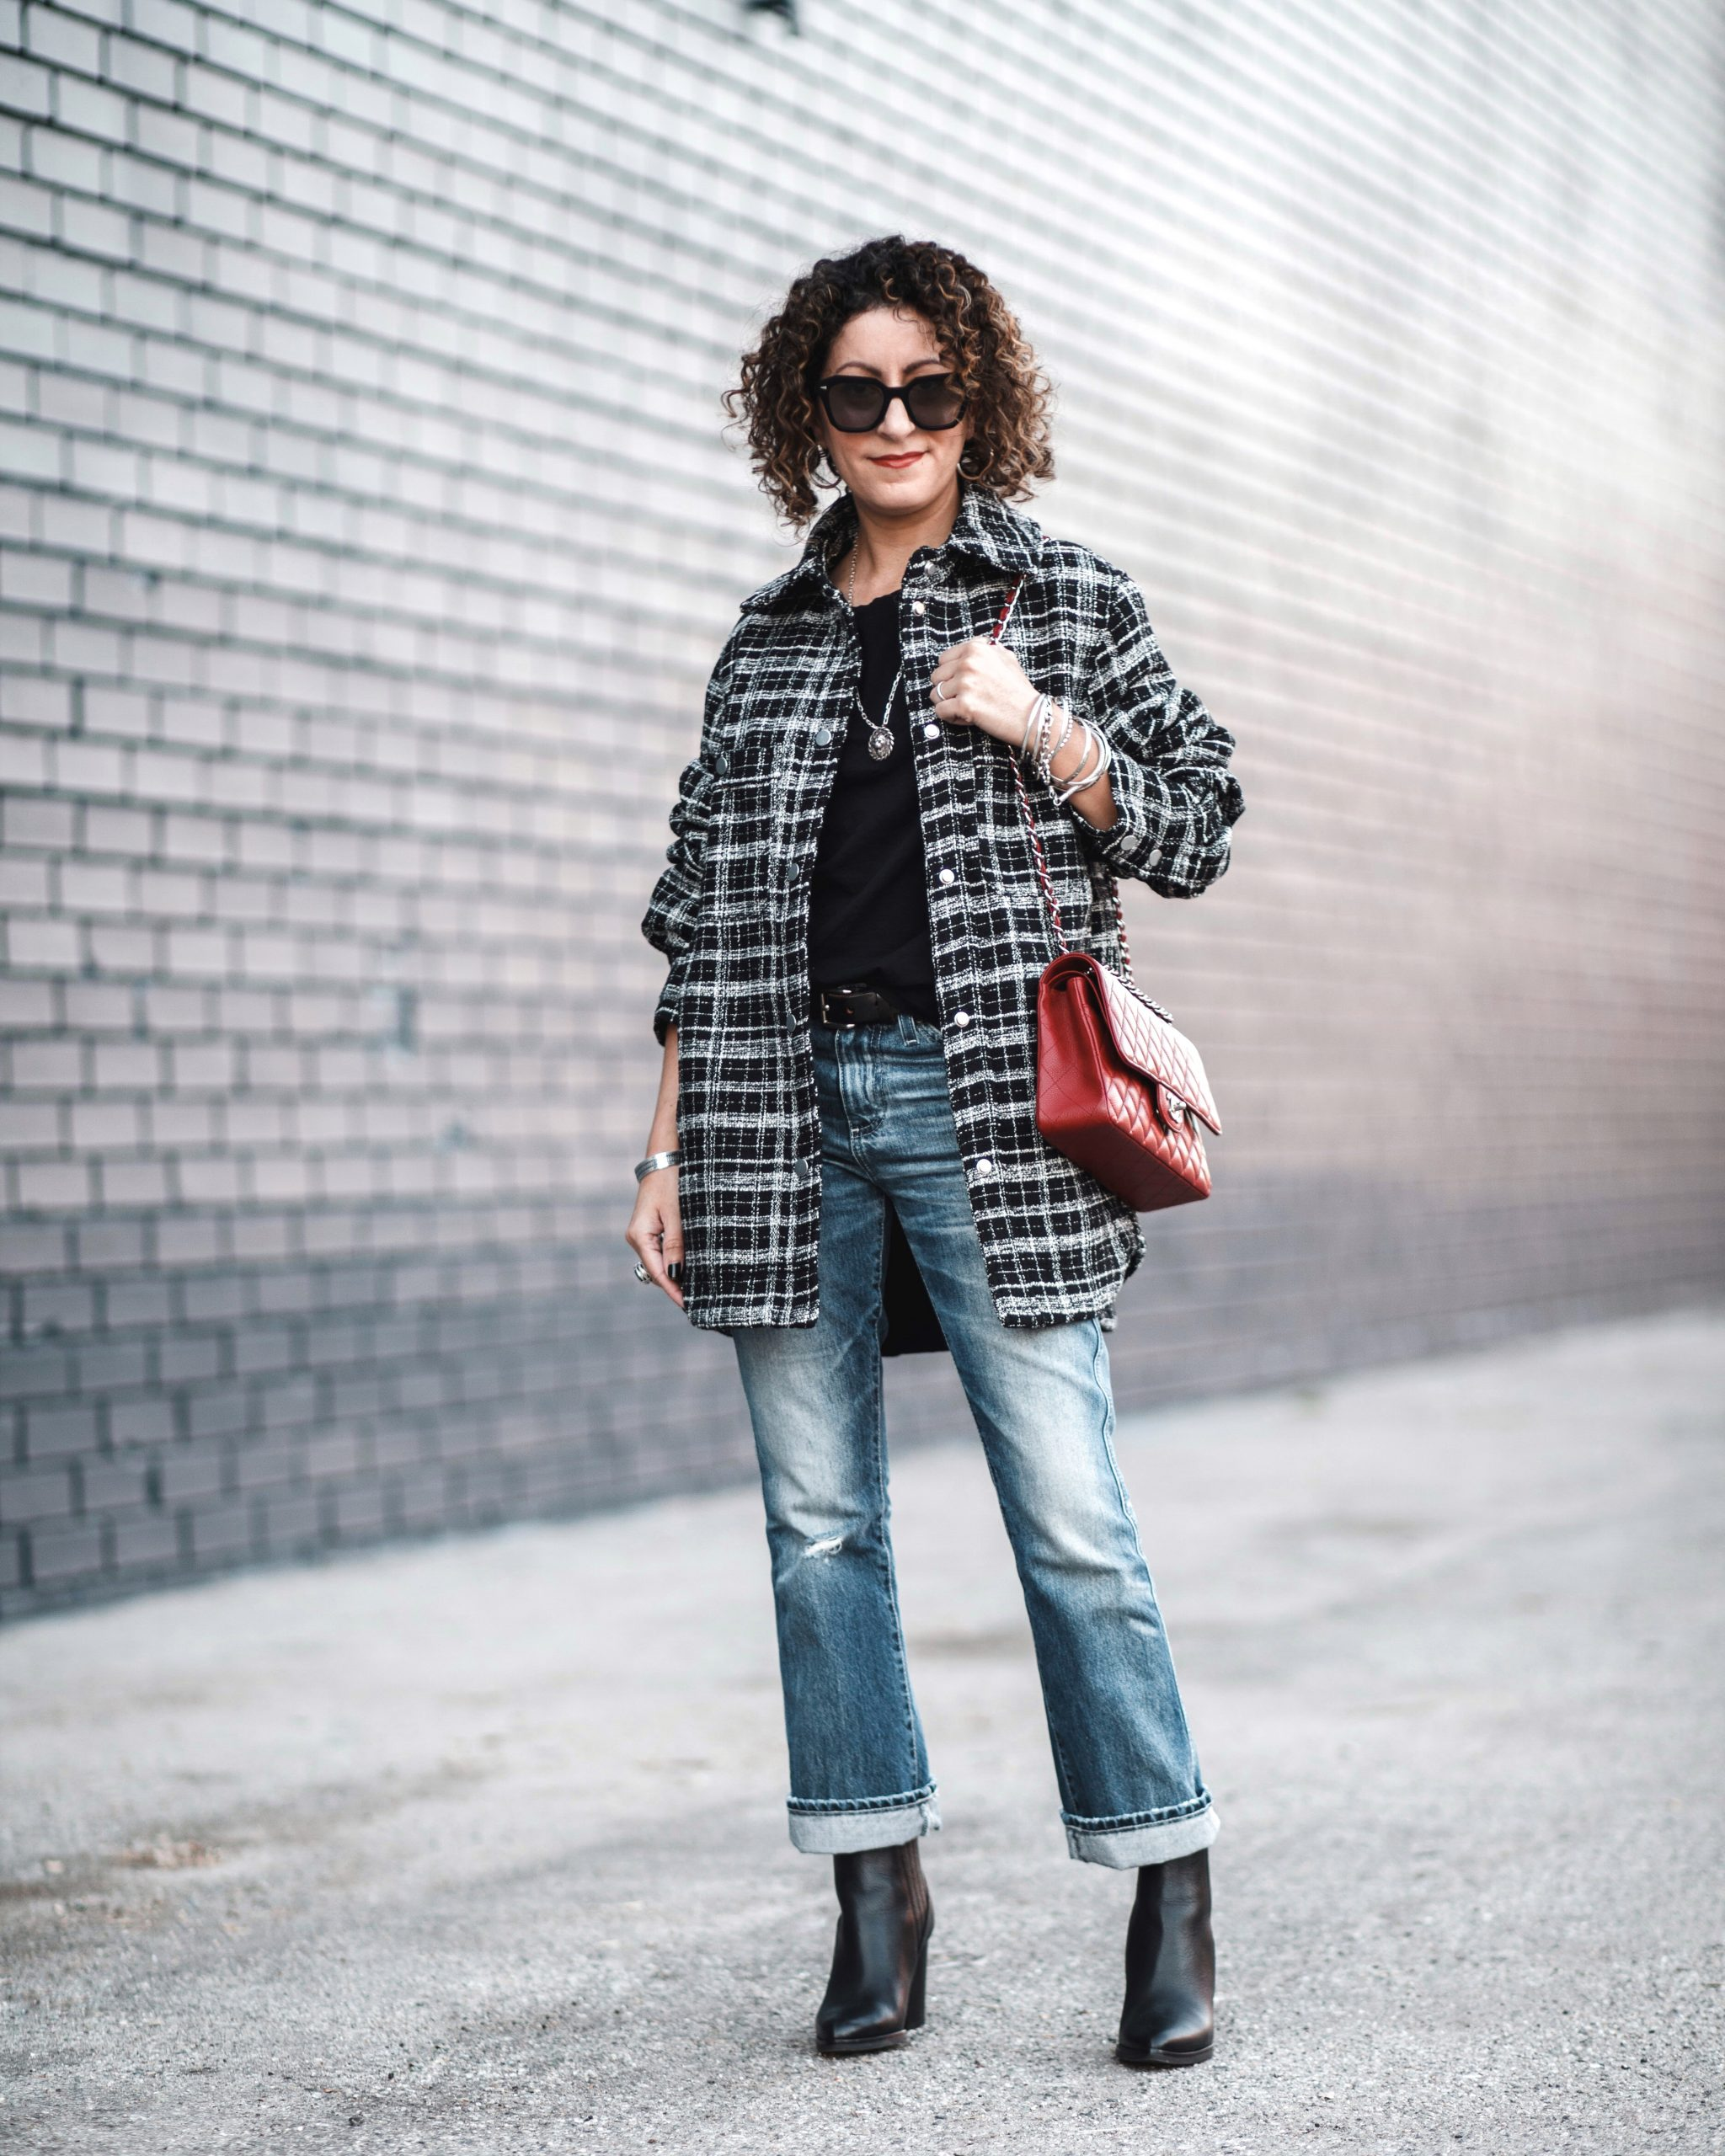 plaid jacket petite fashion style outfit